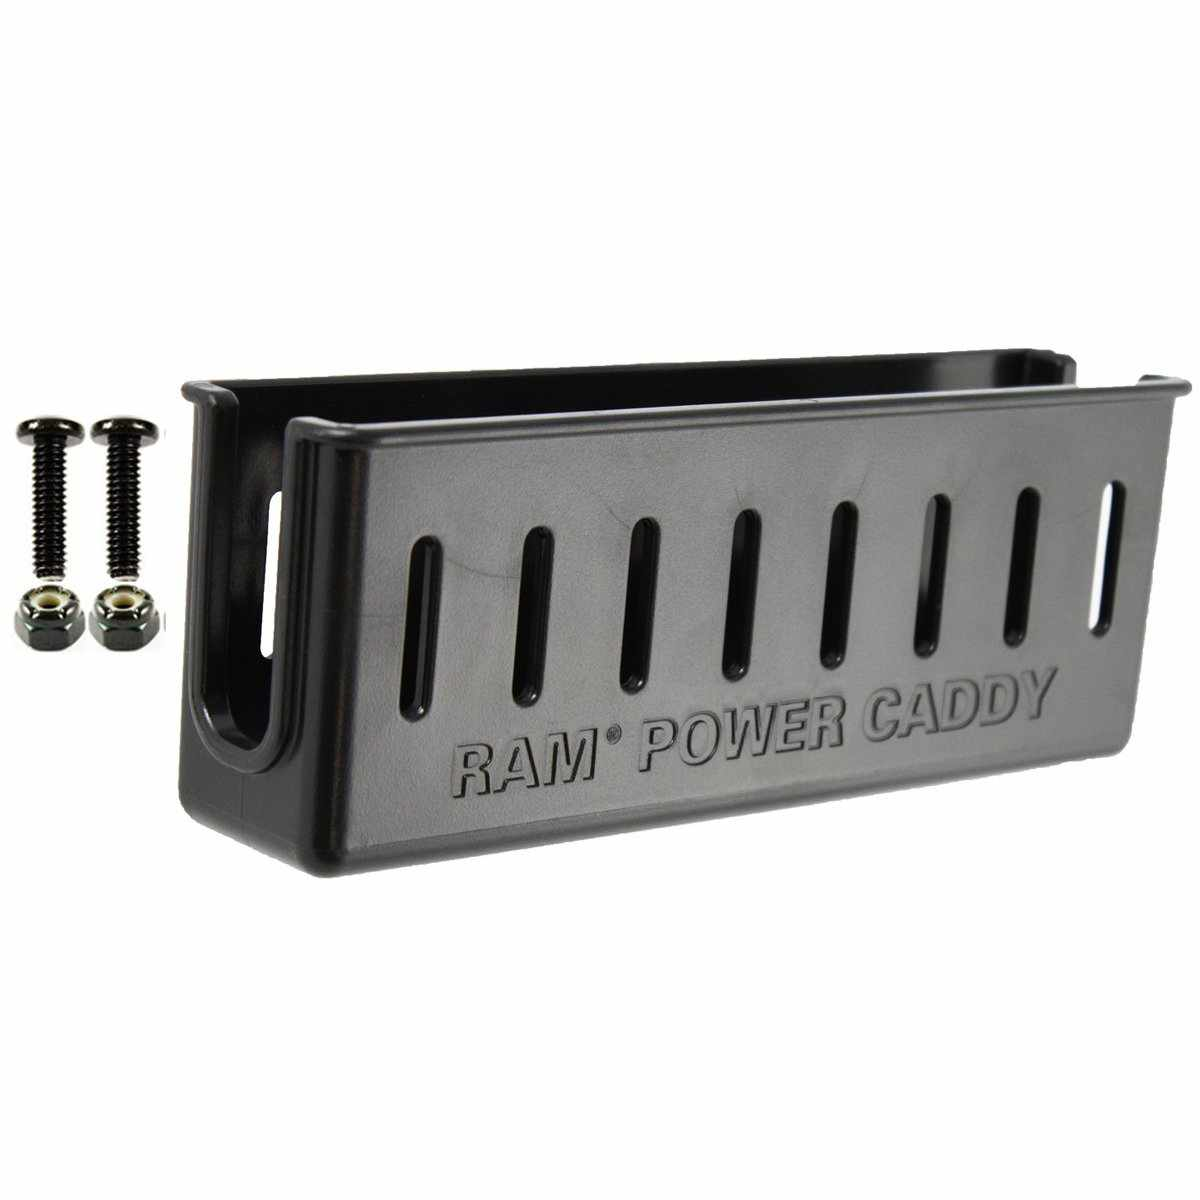 RAM Laptop Power Supply Caddy (RAM-234-5U) - Modest Mounts